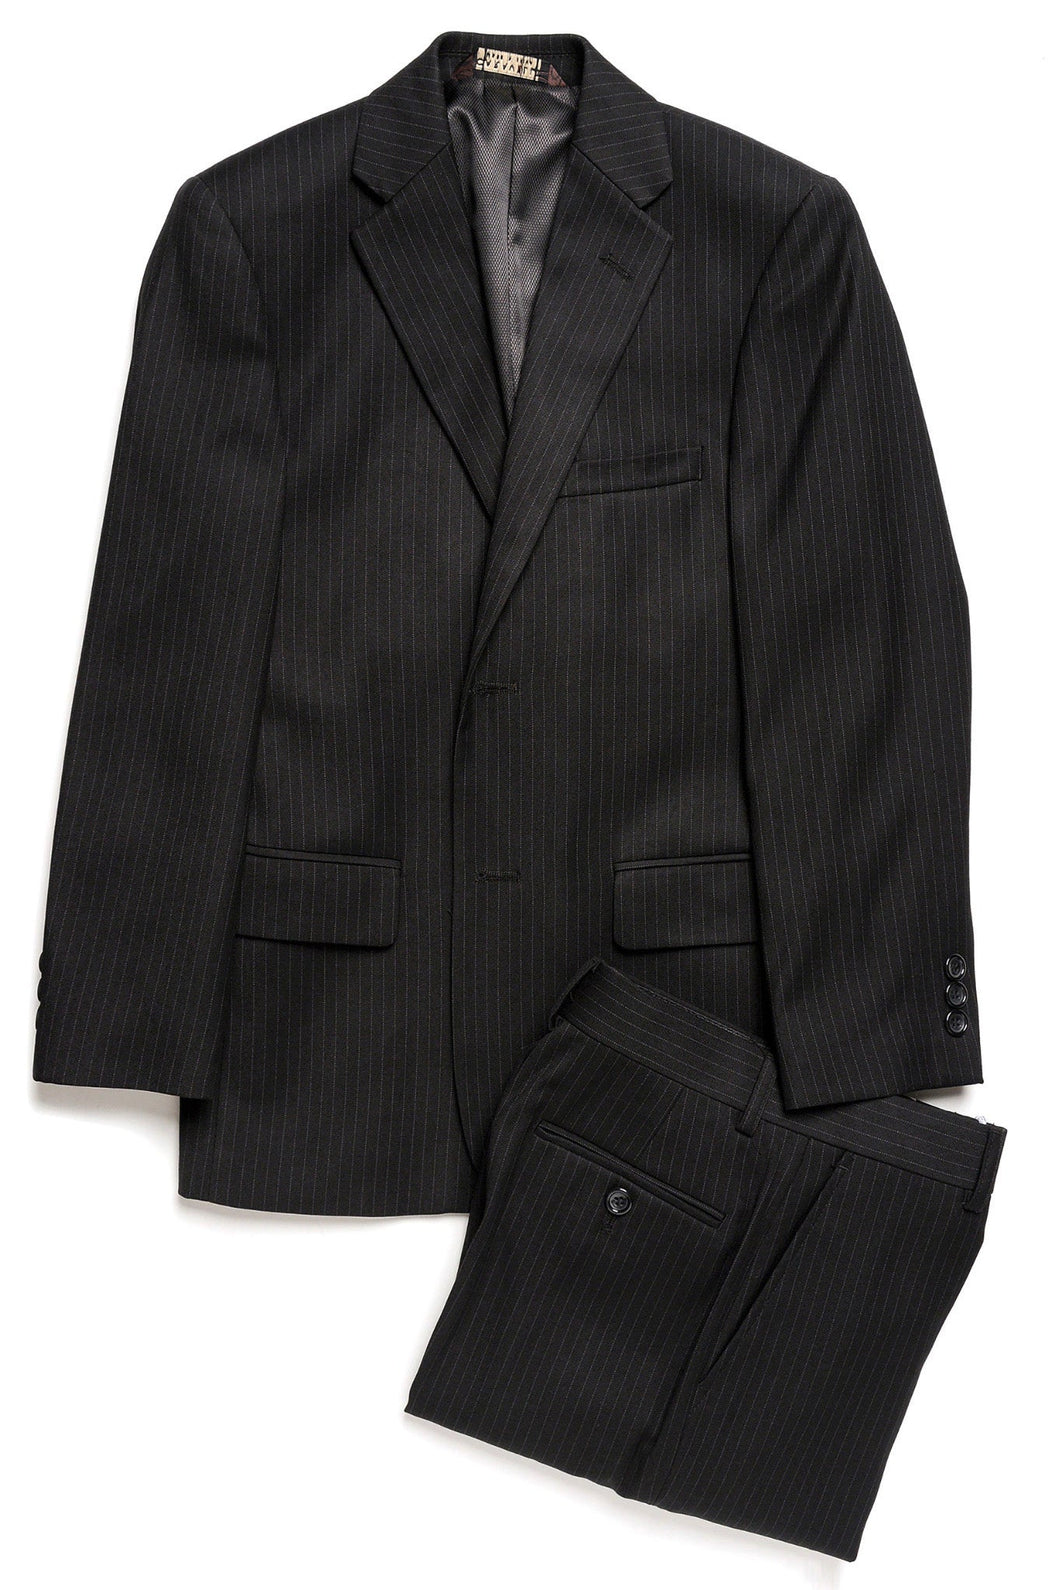 Caravelli Black Tonal Stripe Slim Suit